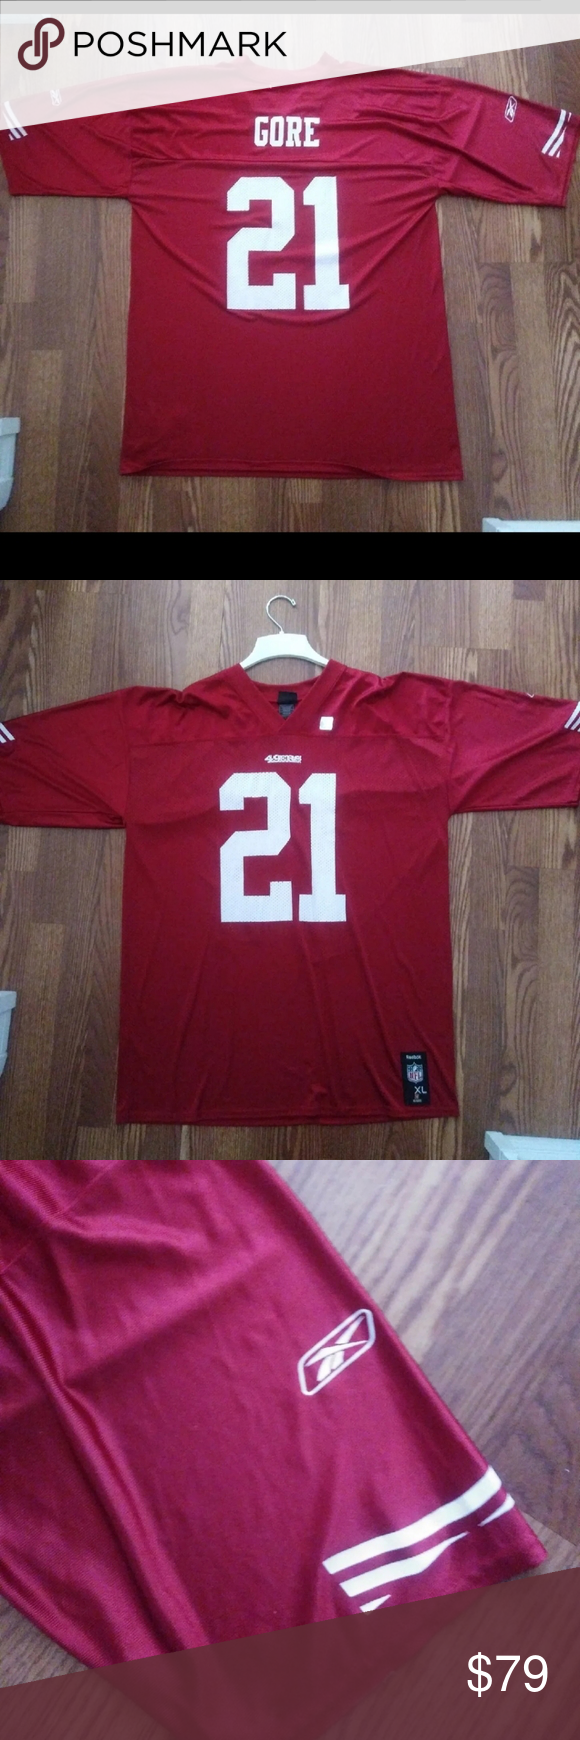 San Francisco 49ers Jersey Throwback Gore In 2020 Jersey San Francisco 49ers Frank Gore